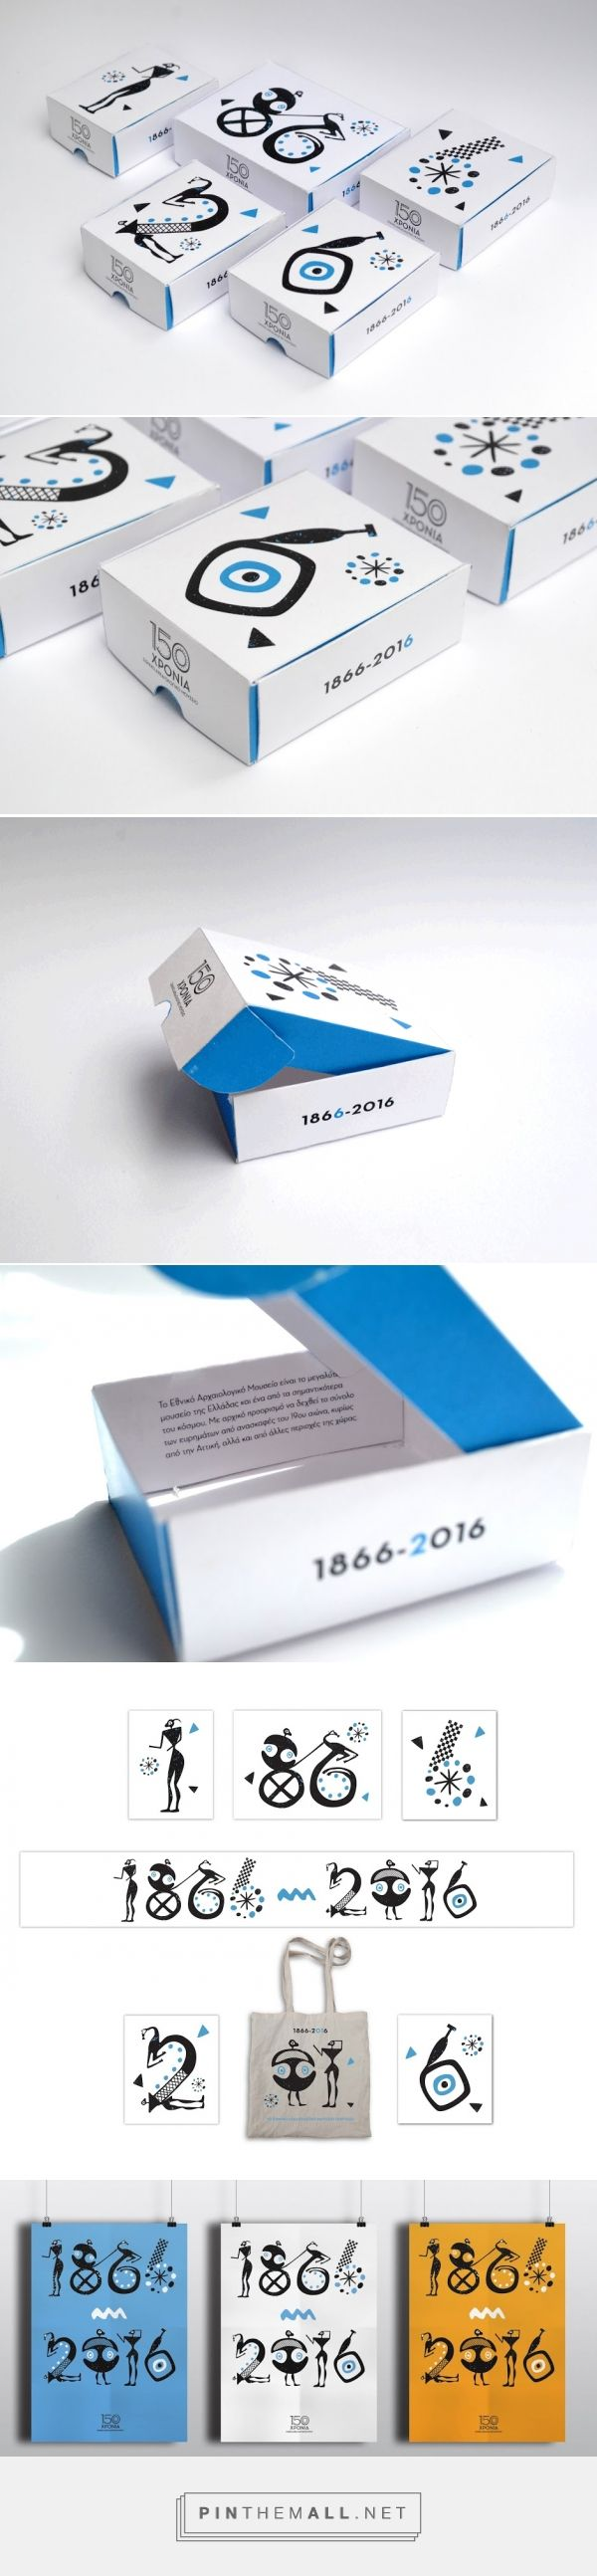 National Archaeological Museum (Student Project) - Packaging of the World - Creative Package Design Gallery - http://www.packagingoftheworld.com/2016/05/national-archaeological-museum-student.html